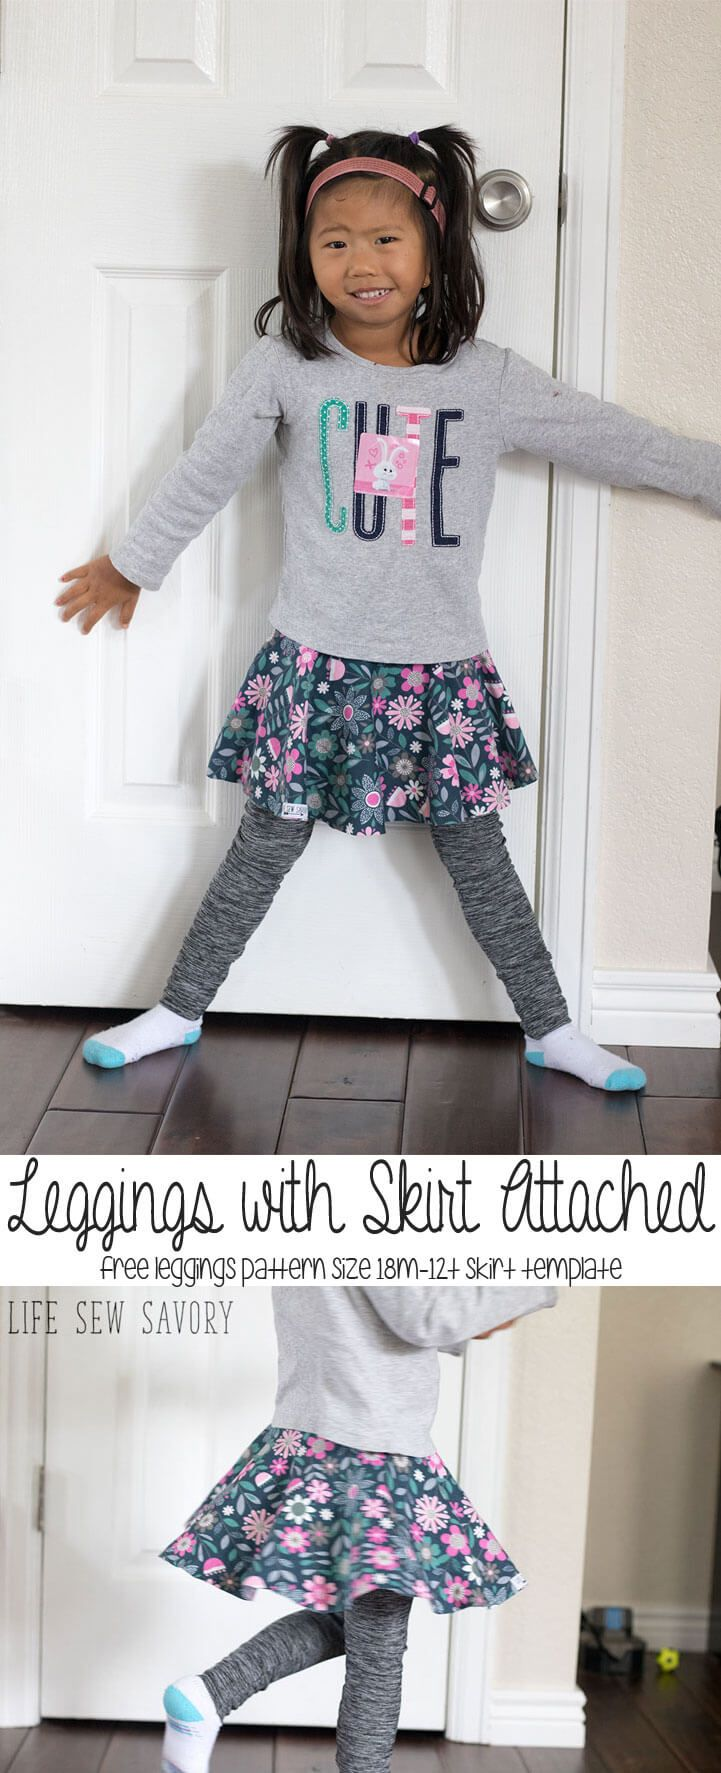 2ce0c2bbc5 free leggings with skirt attached pattern and tutorial from Life Sew Savory